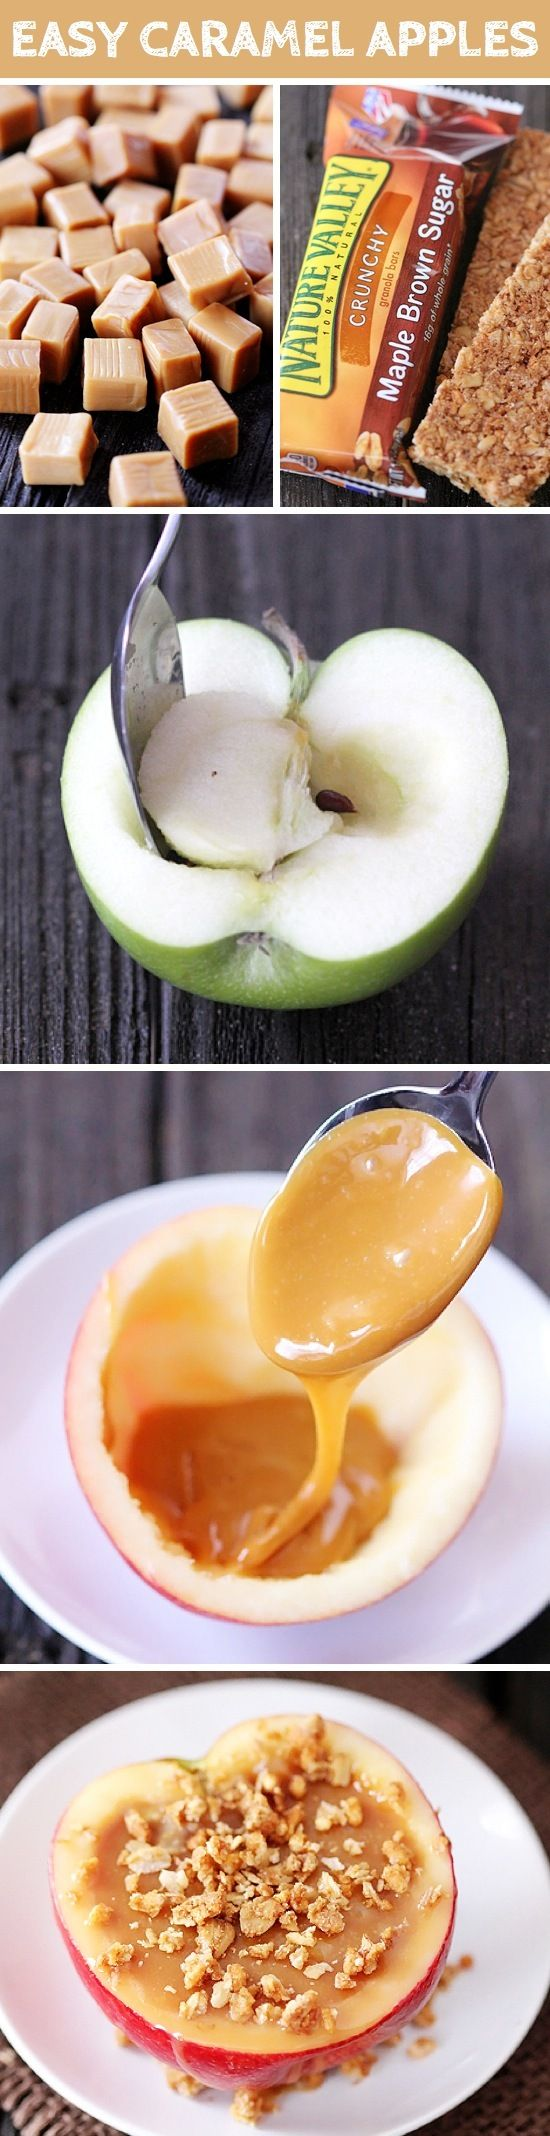 recipes with pictures, recipes in pictures, recipes pictures, pictures and recipes, pictures of recipes, caramel apples recipe